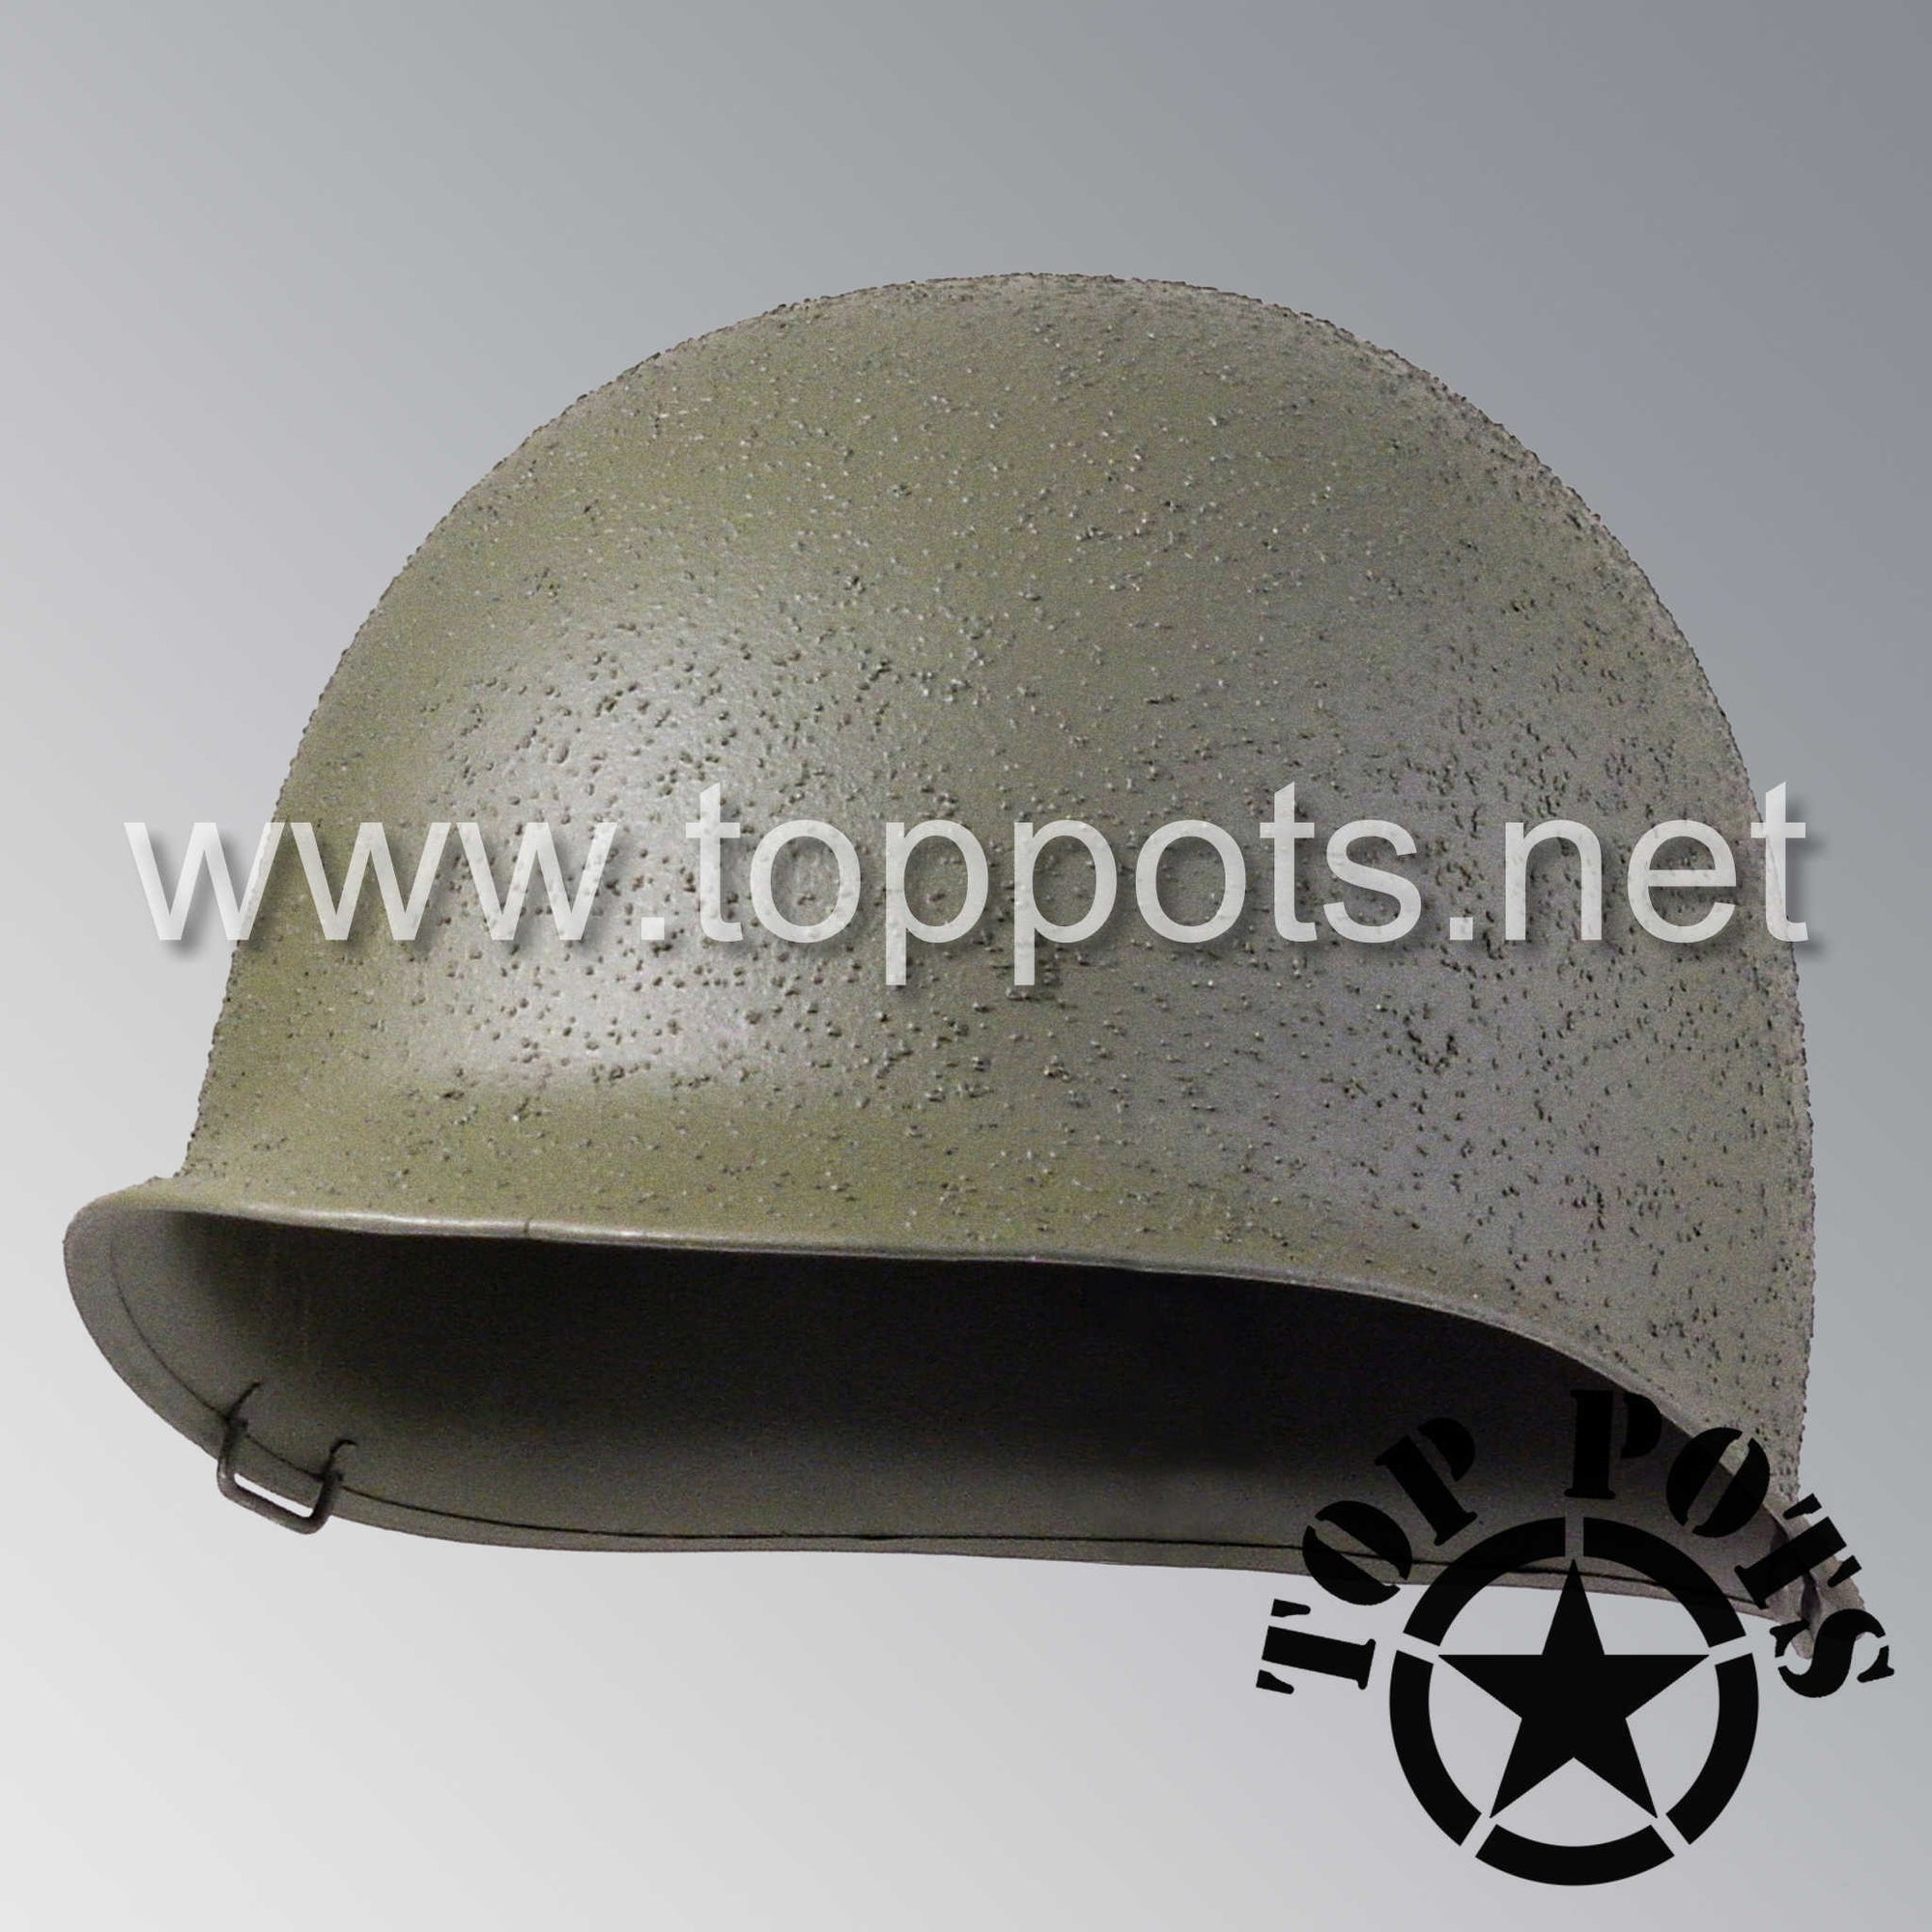 Image 1 of WWII US Army Restored Original M1 Infantry Helmet Fix Bale McCord Shell